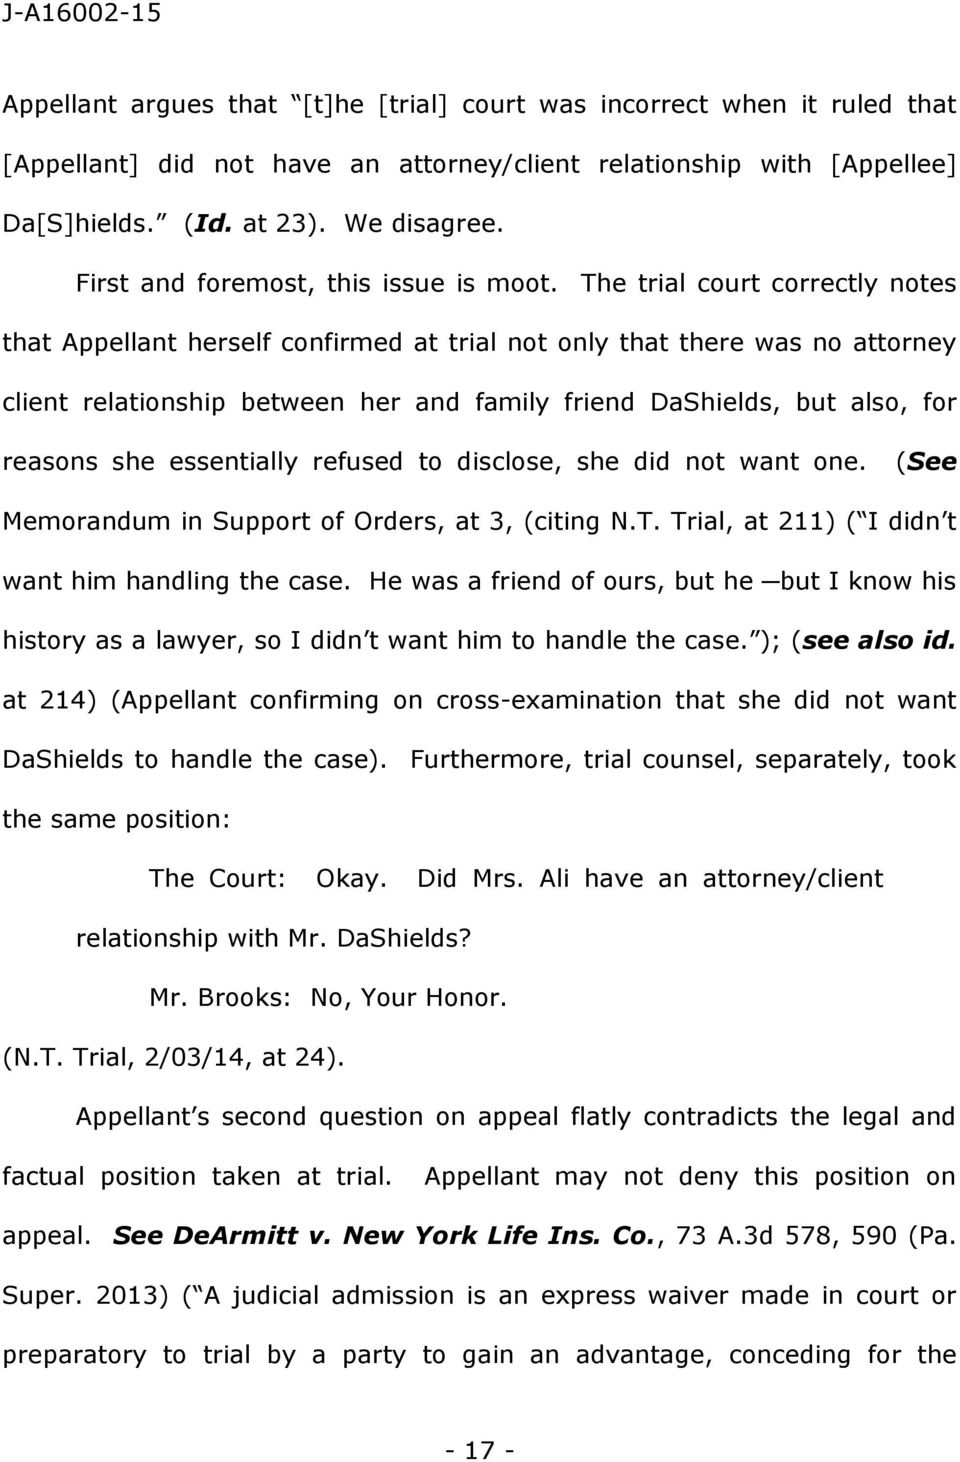 The trial court correctly notes that Appellant herself confirmed at trial not only that there was no attorney client relationship between her and family friend DaShields, but also, for reasons she